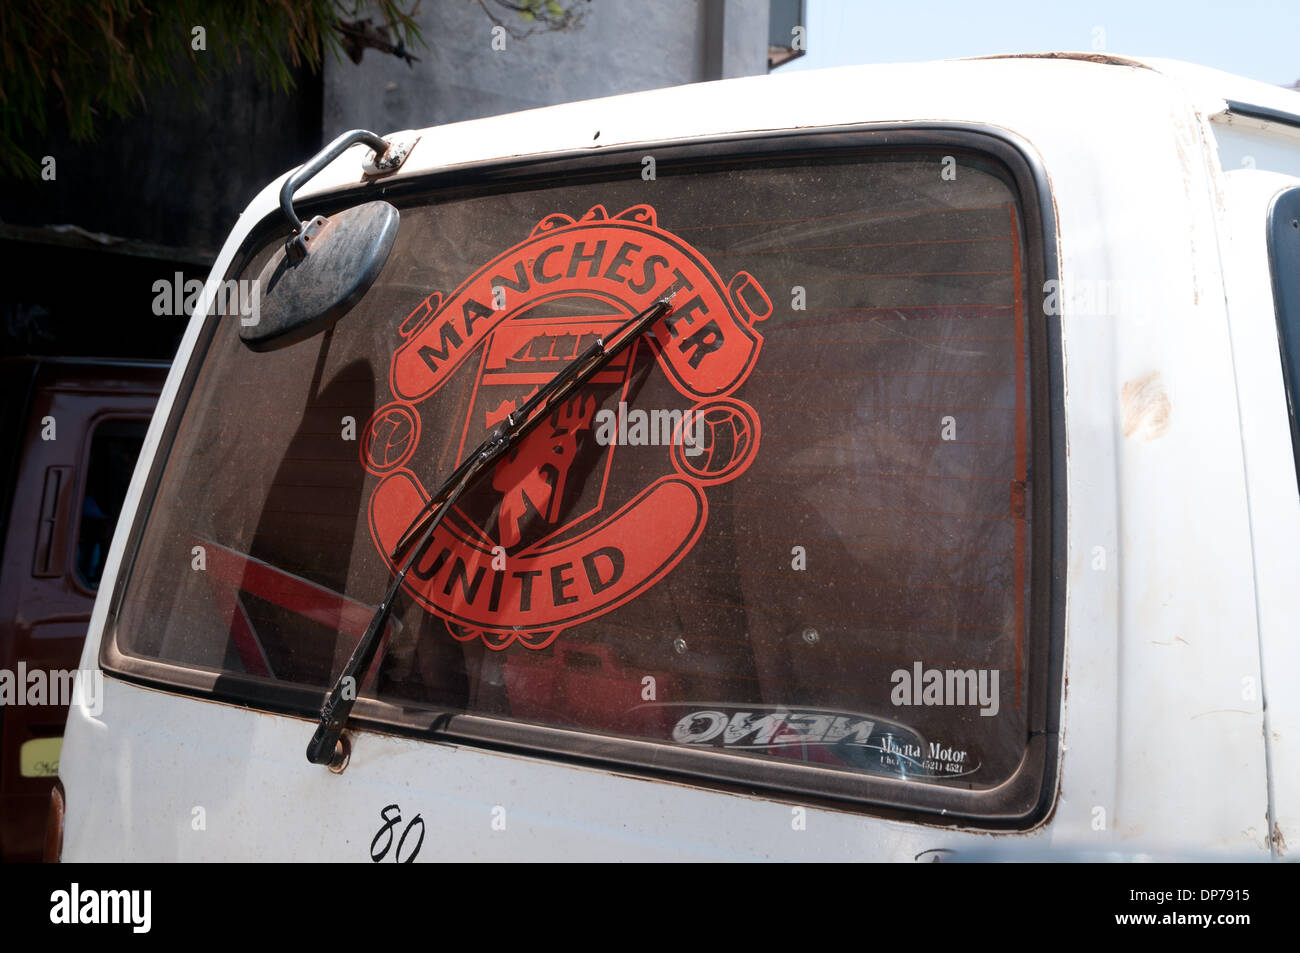 Logo for Manchester United in rear window of Matatu or Minibus in Nairobi Kenya Africa - Stock Image